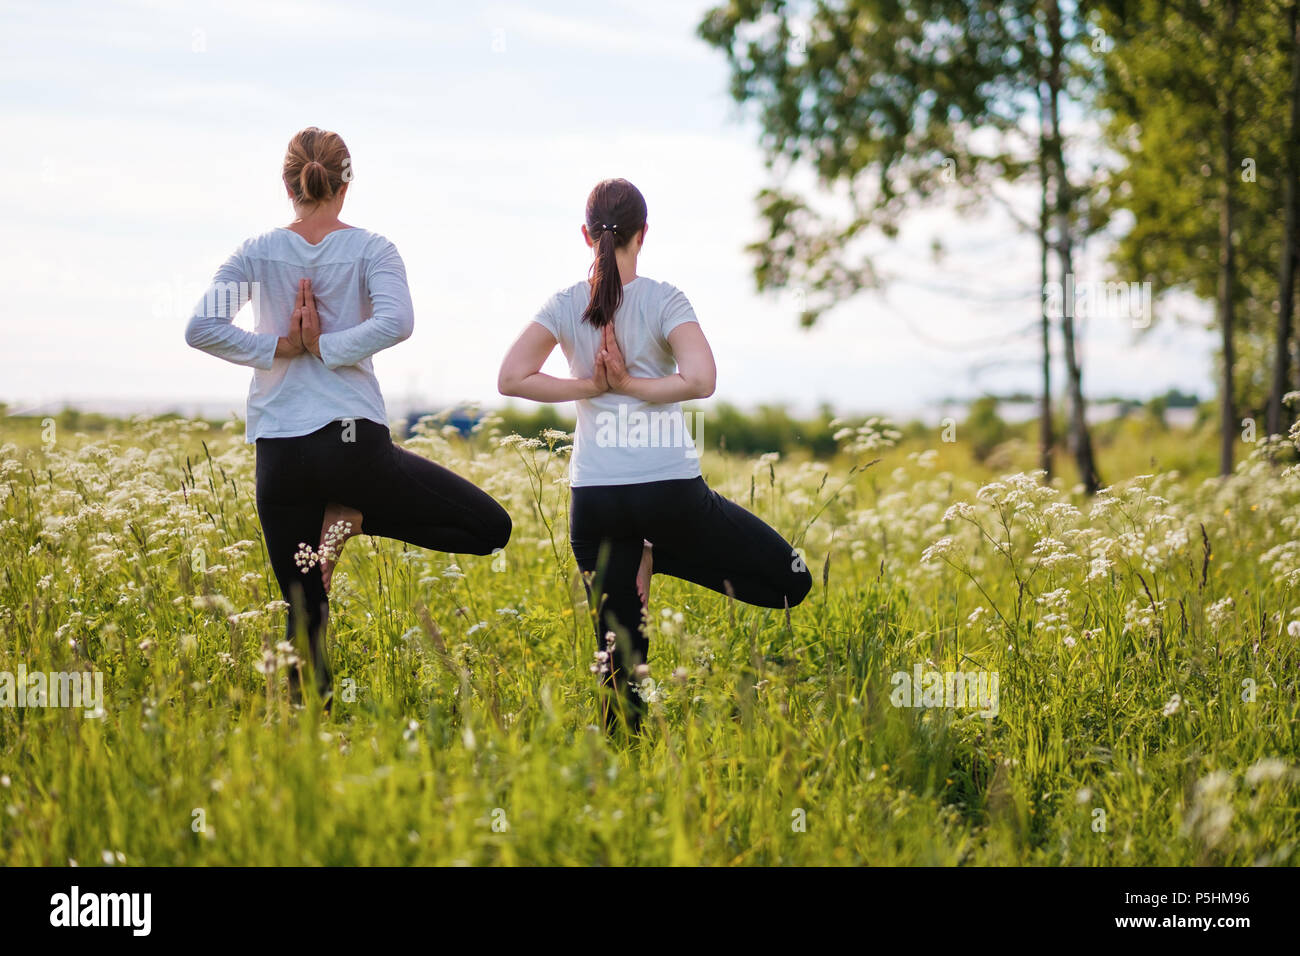 Two women le doing yoga exercises, standing on one leg at outdoors in nature park. - Stock Image